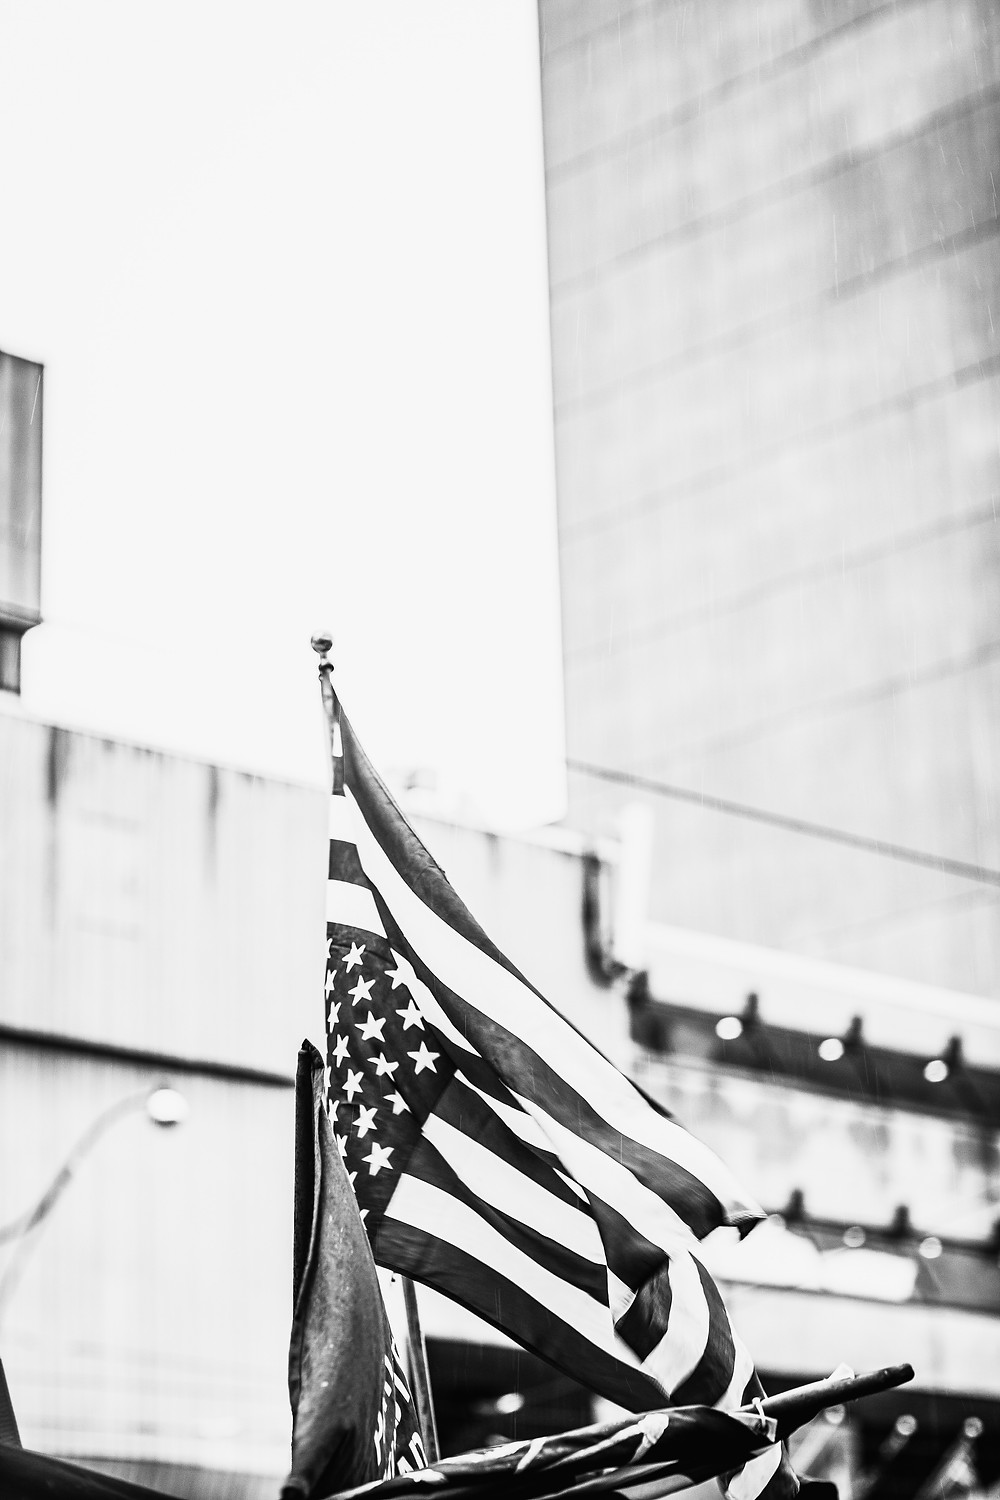 American flag against a building